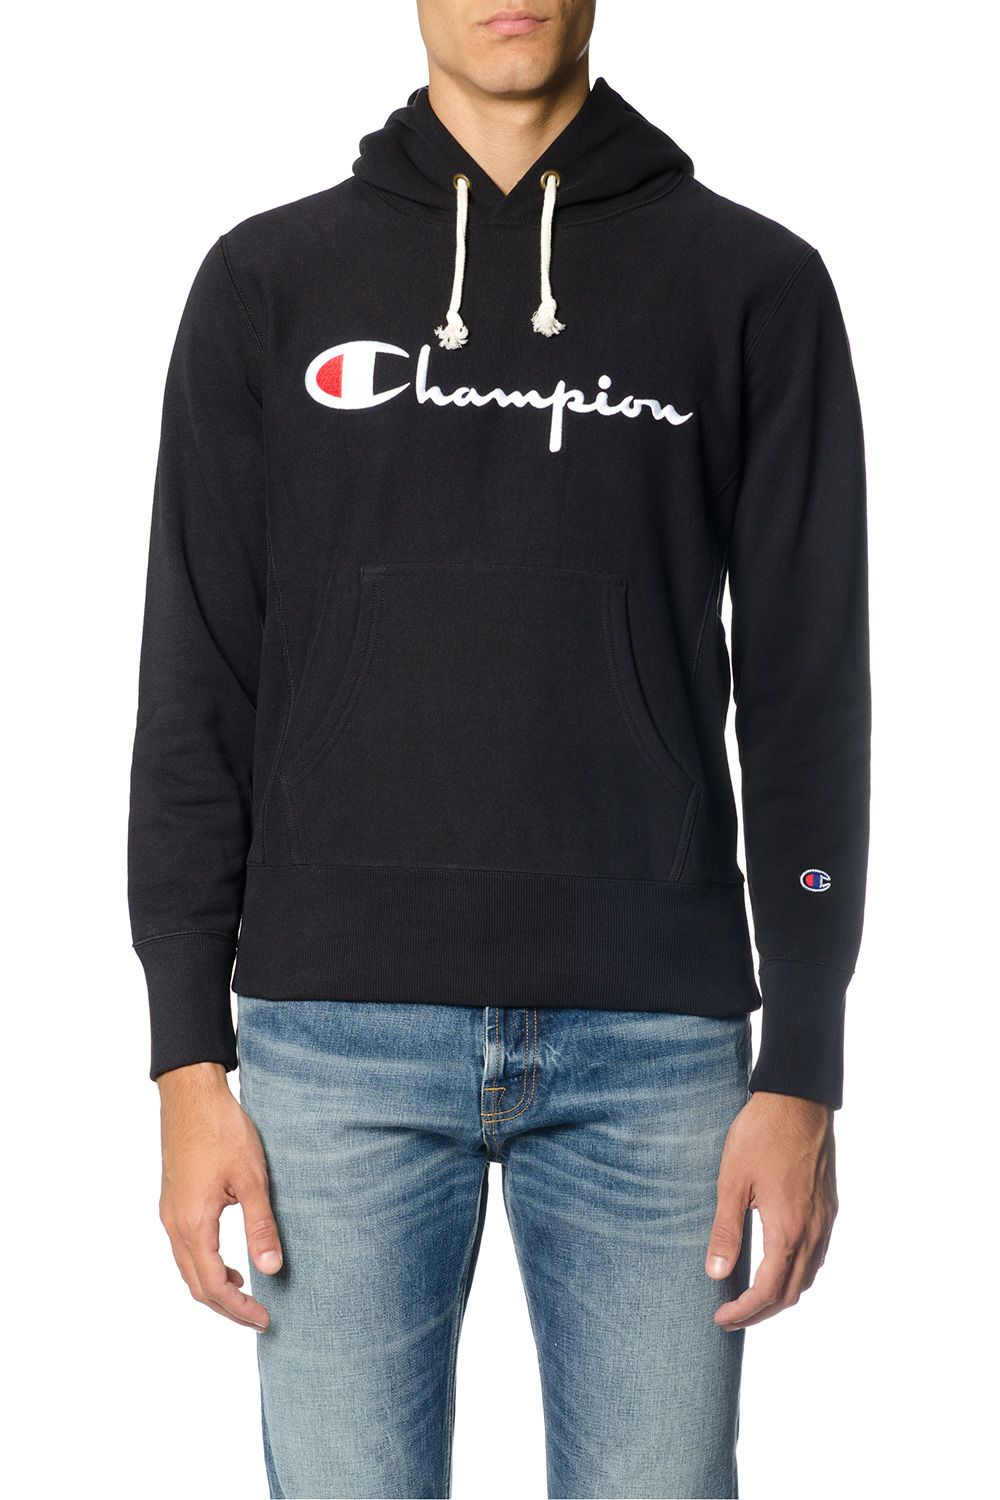 Champion Cotton Sweatshirt With Champion Written